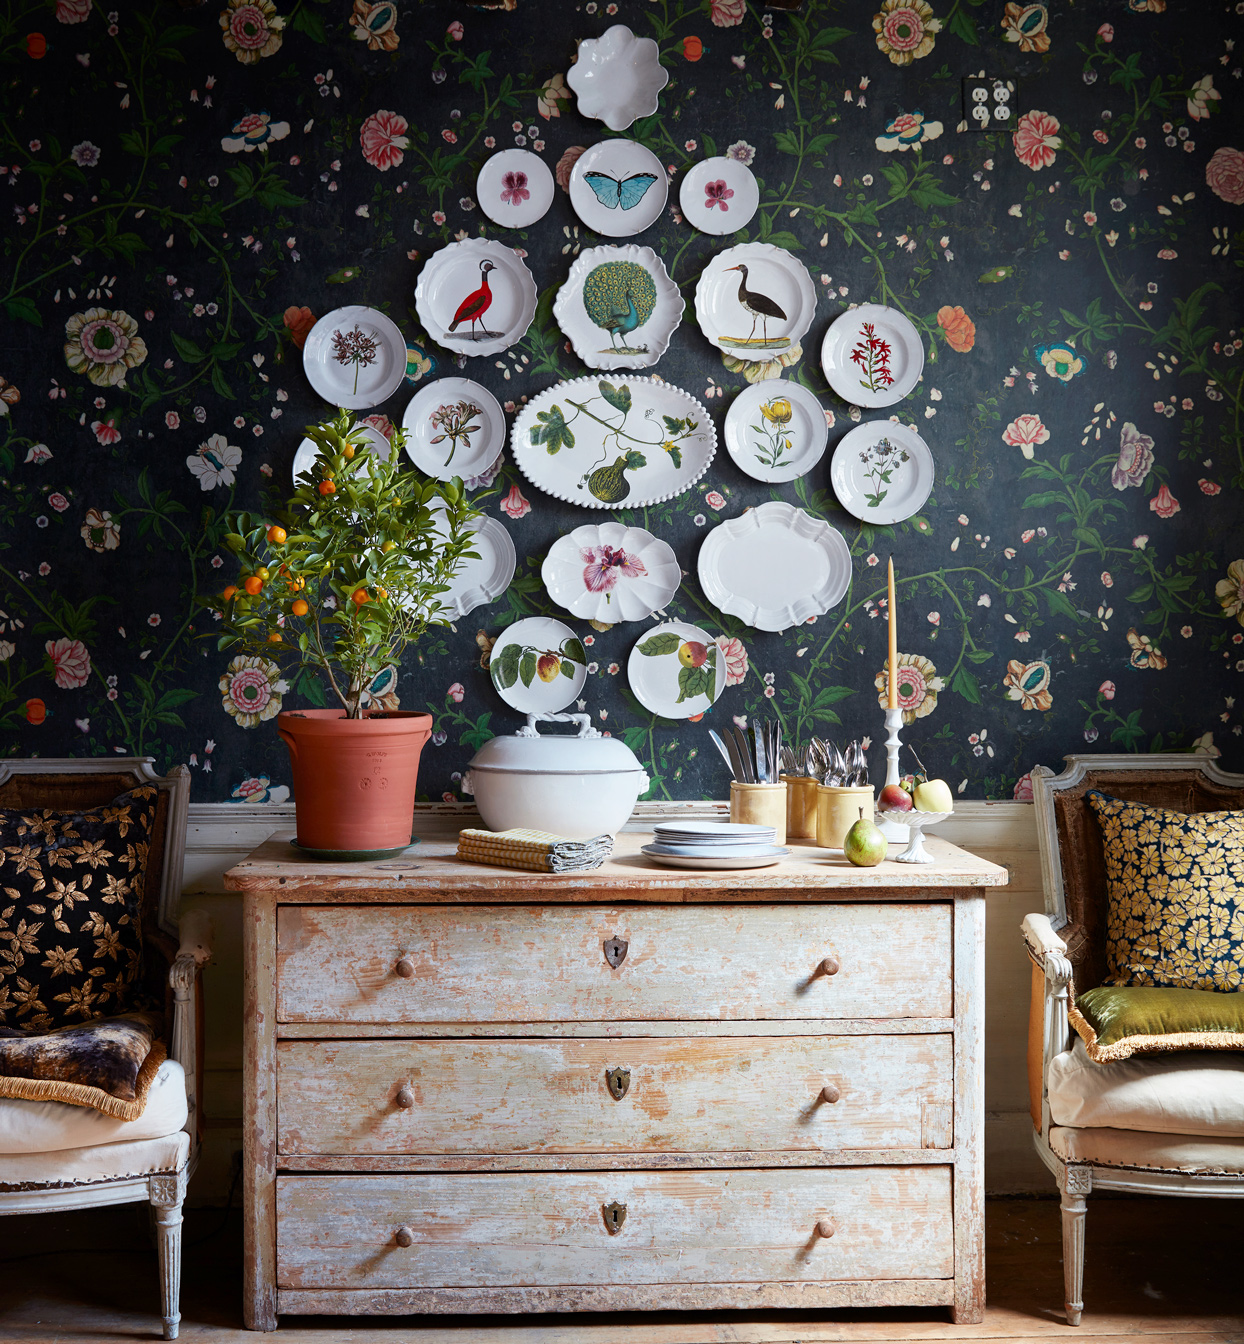 ceramic plates with plant and animal designs on wall